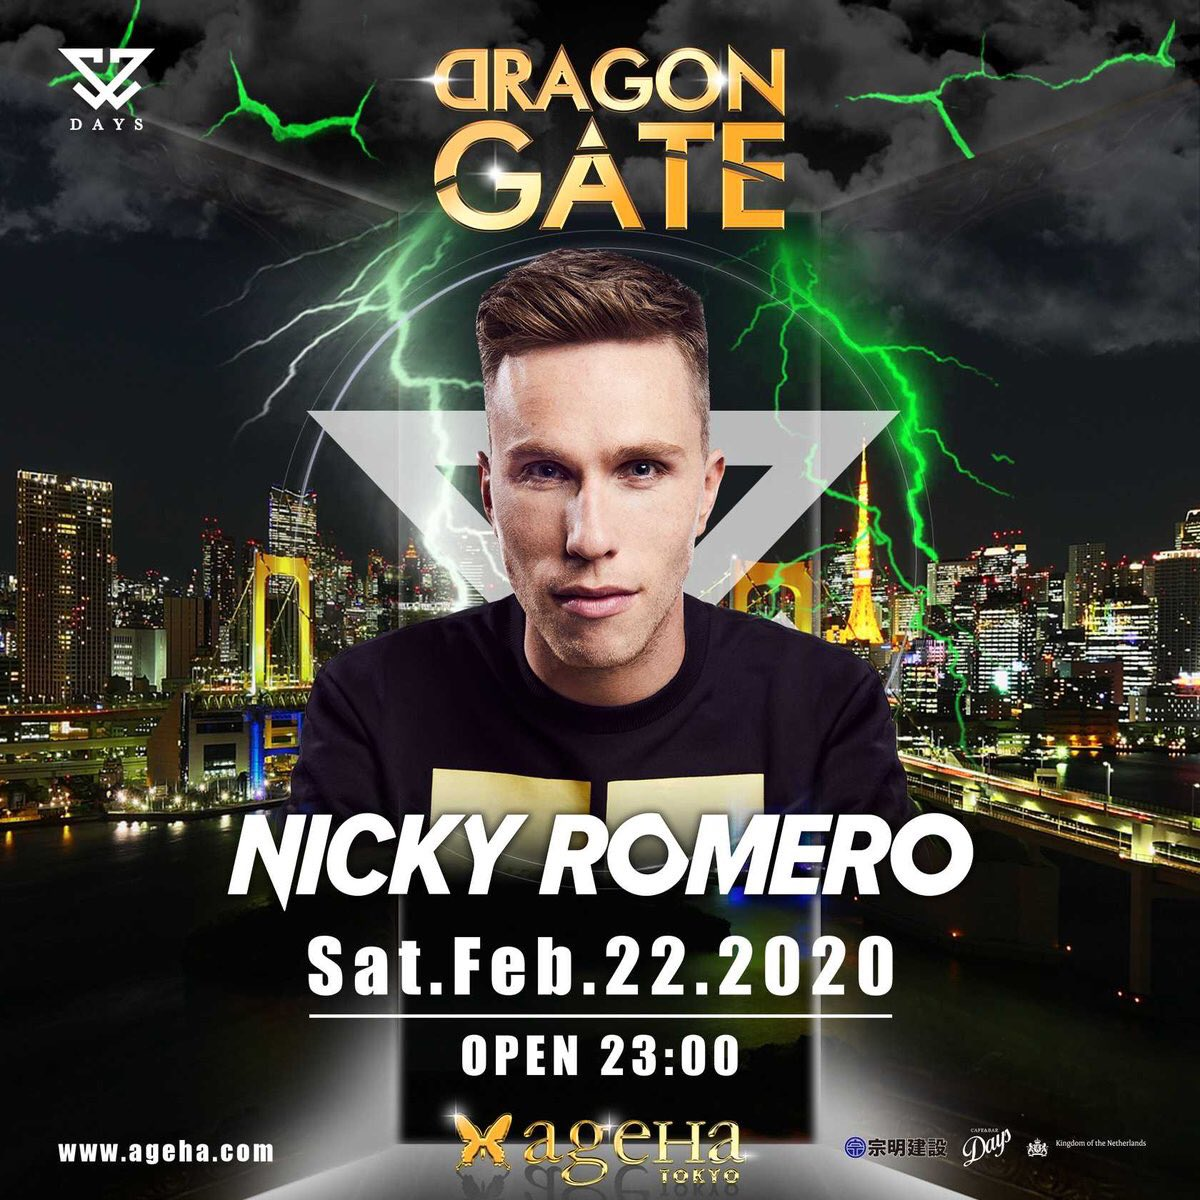 DRAGON GATE feat. NICKY ROMERO Presents by DAYS